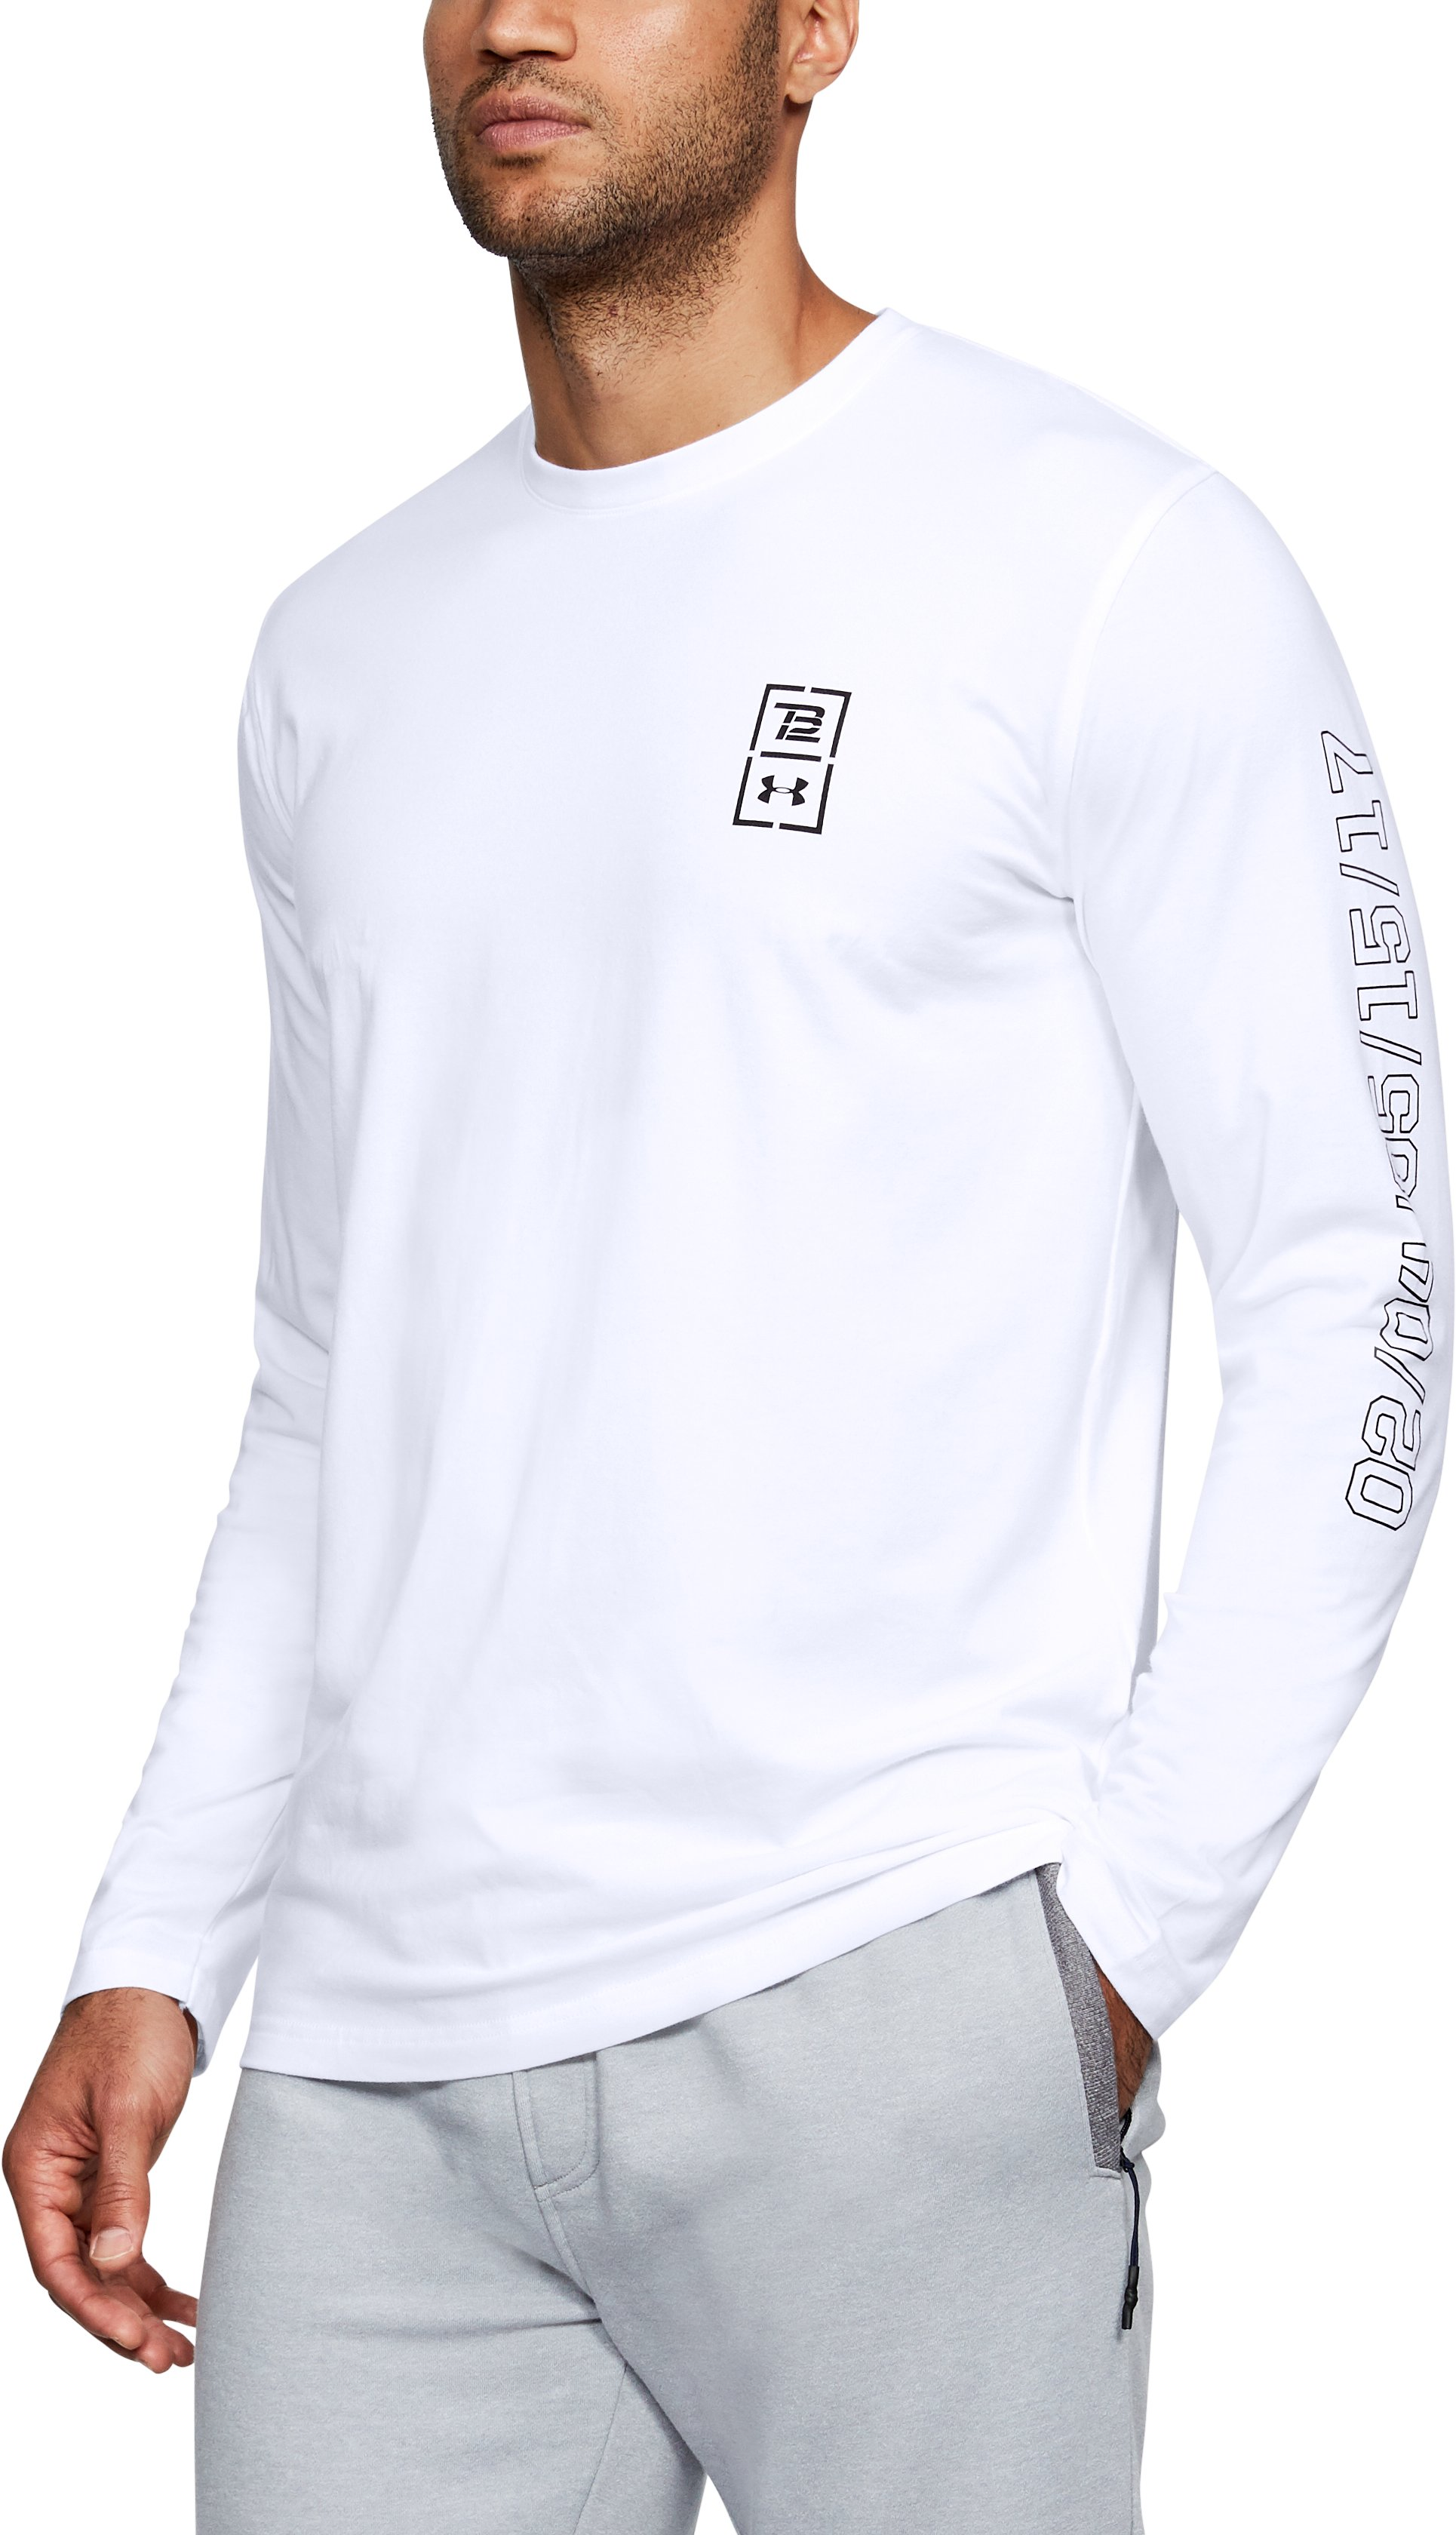 Men's TB12 UA LE Long Sleeve T-Shirt, White